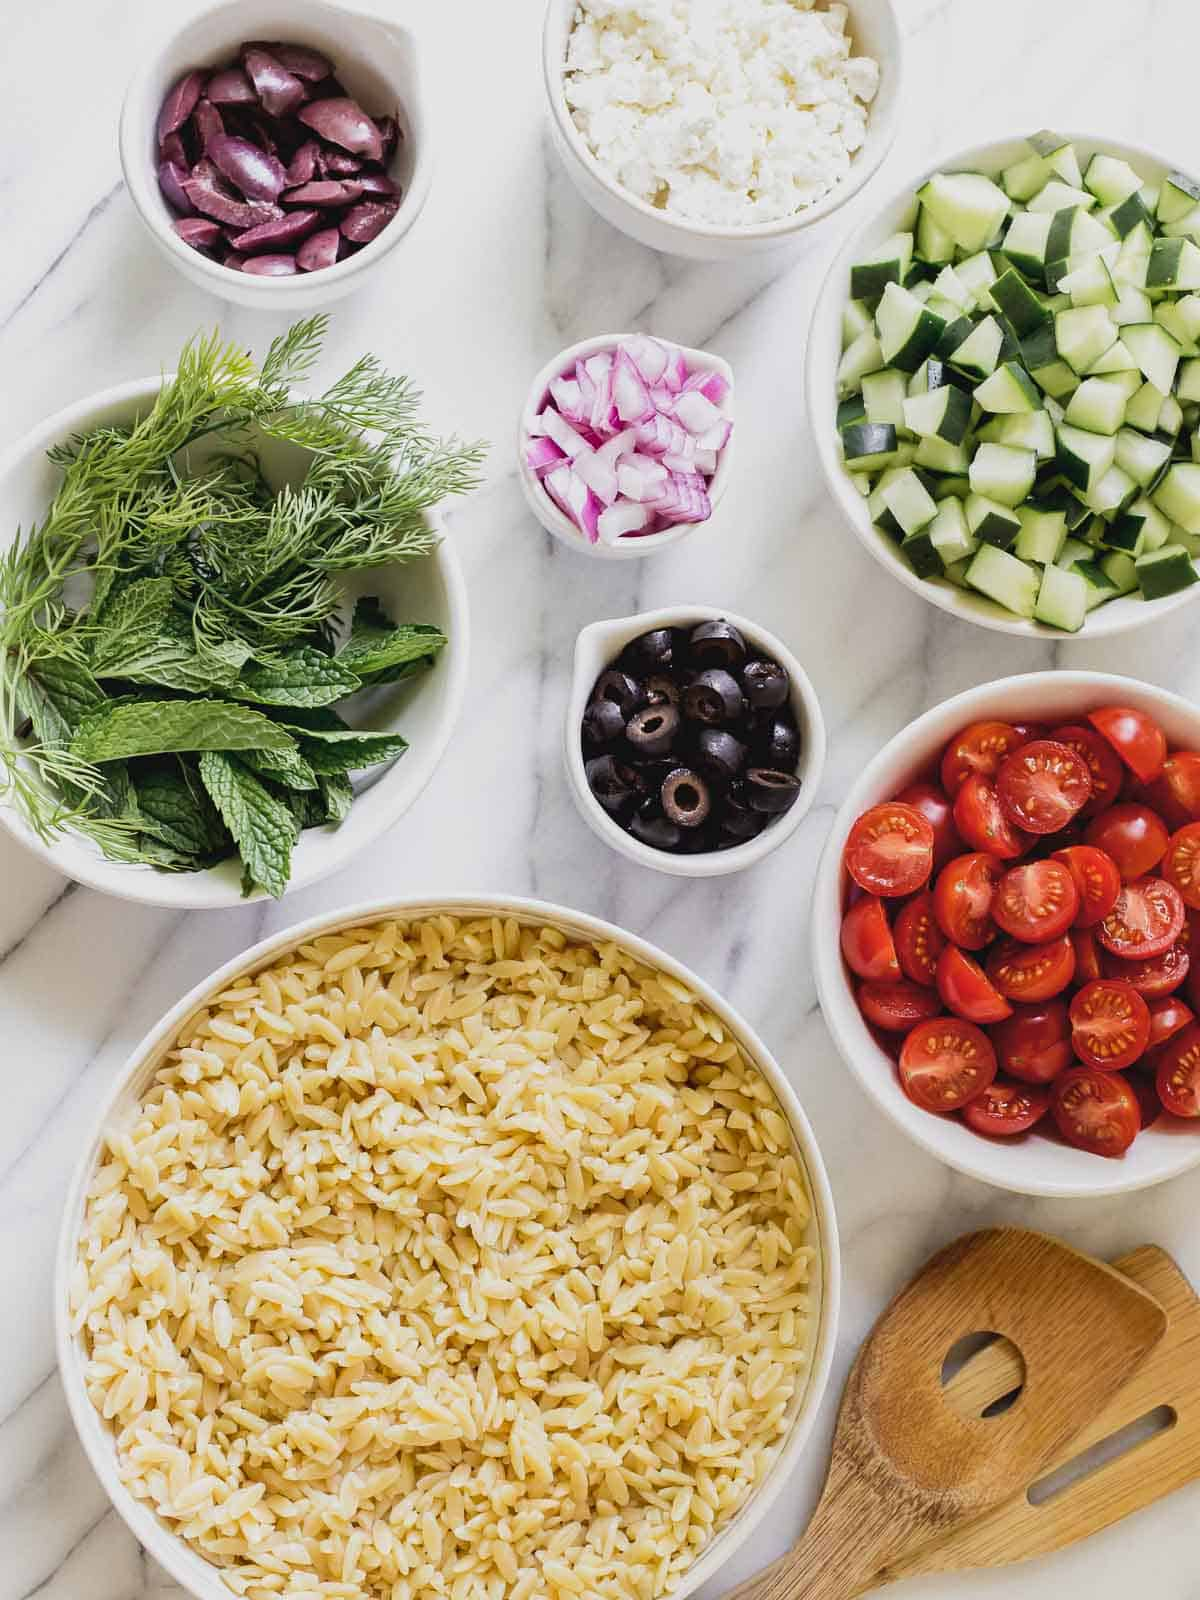 Greek orzo salad recipe ingredients on a table.